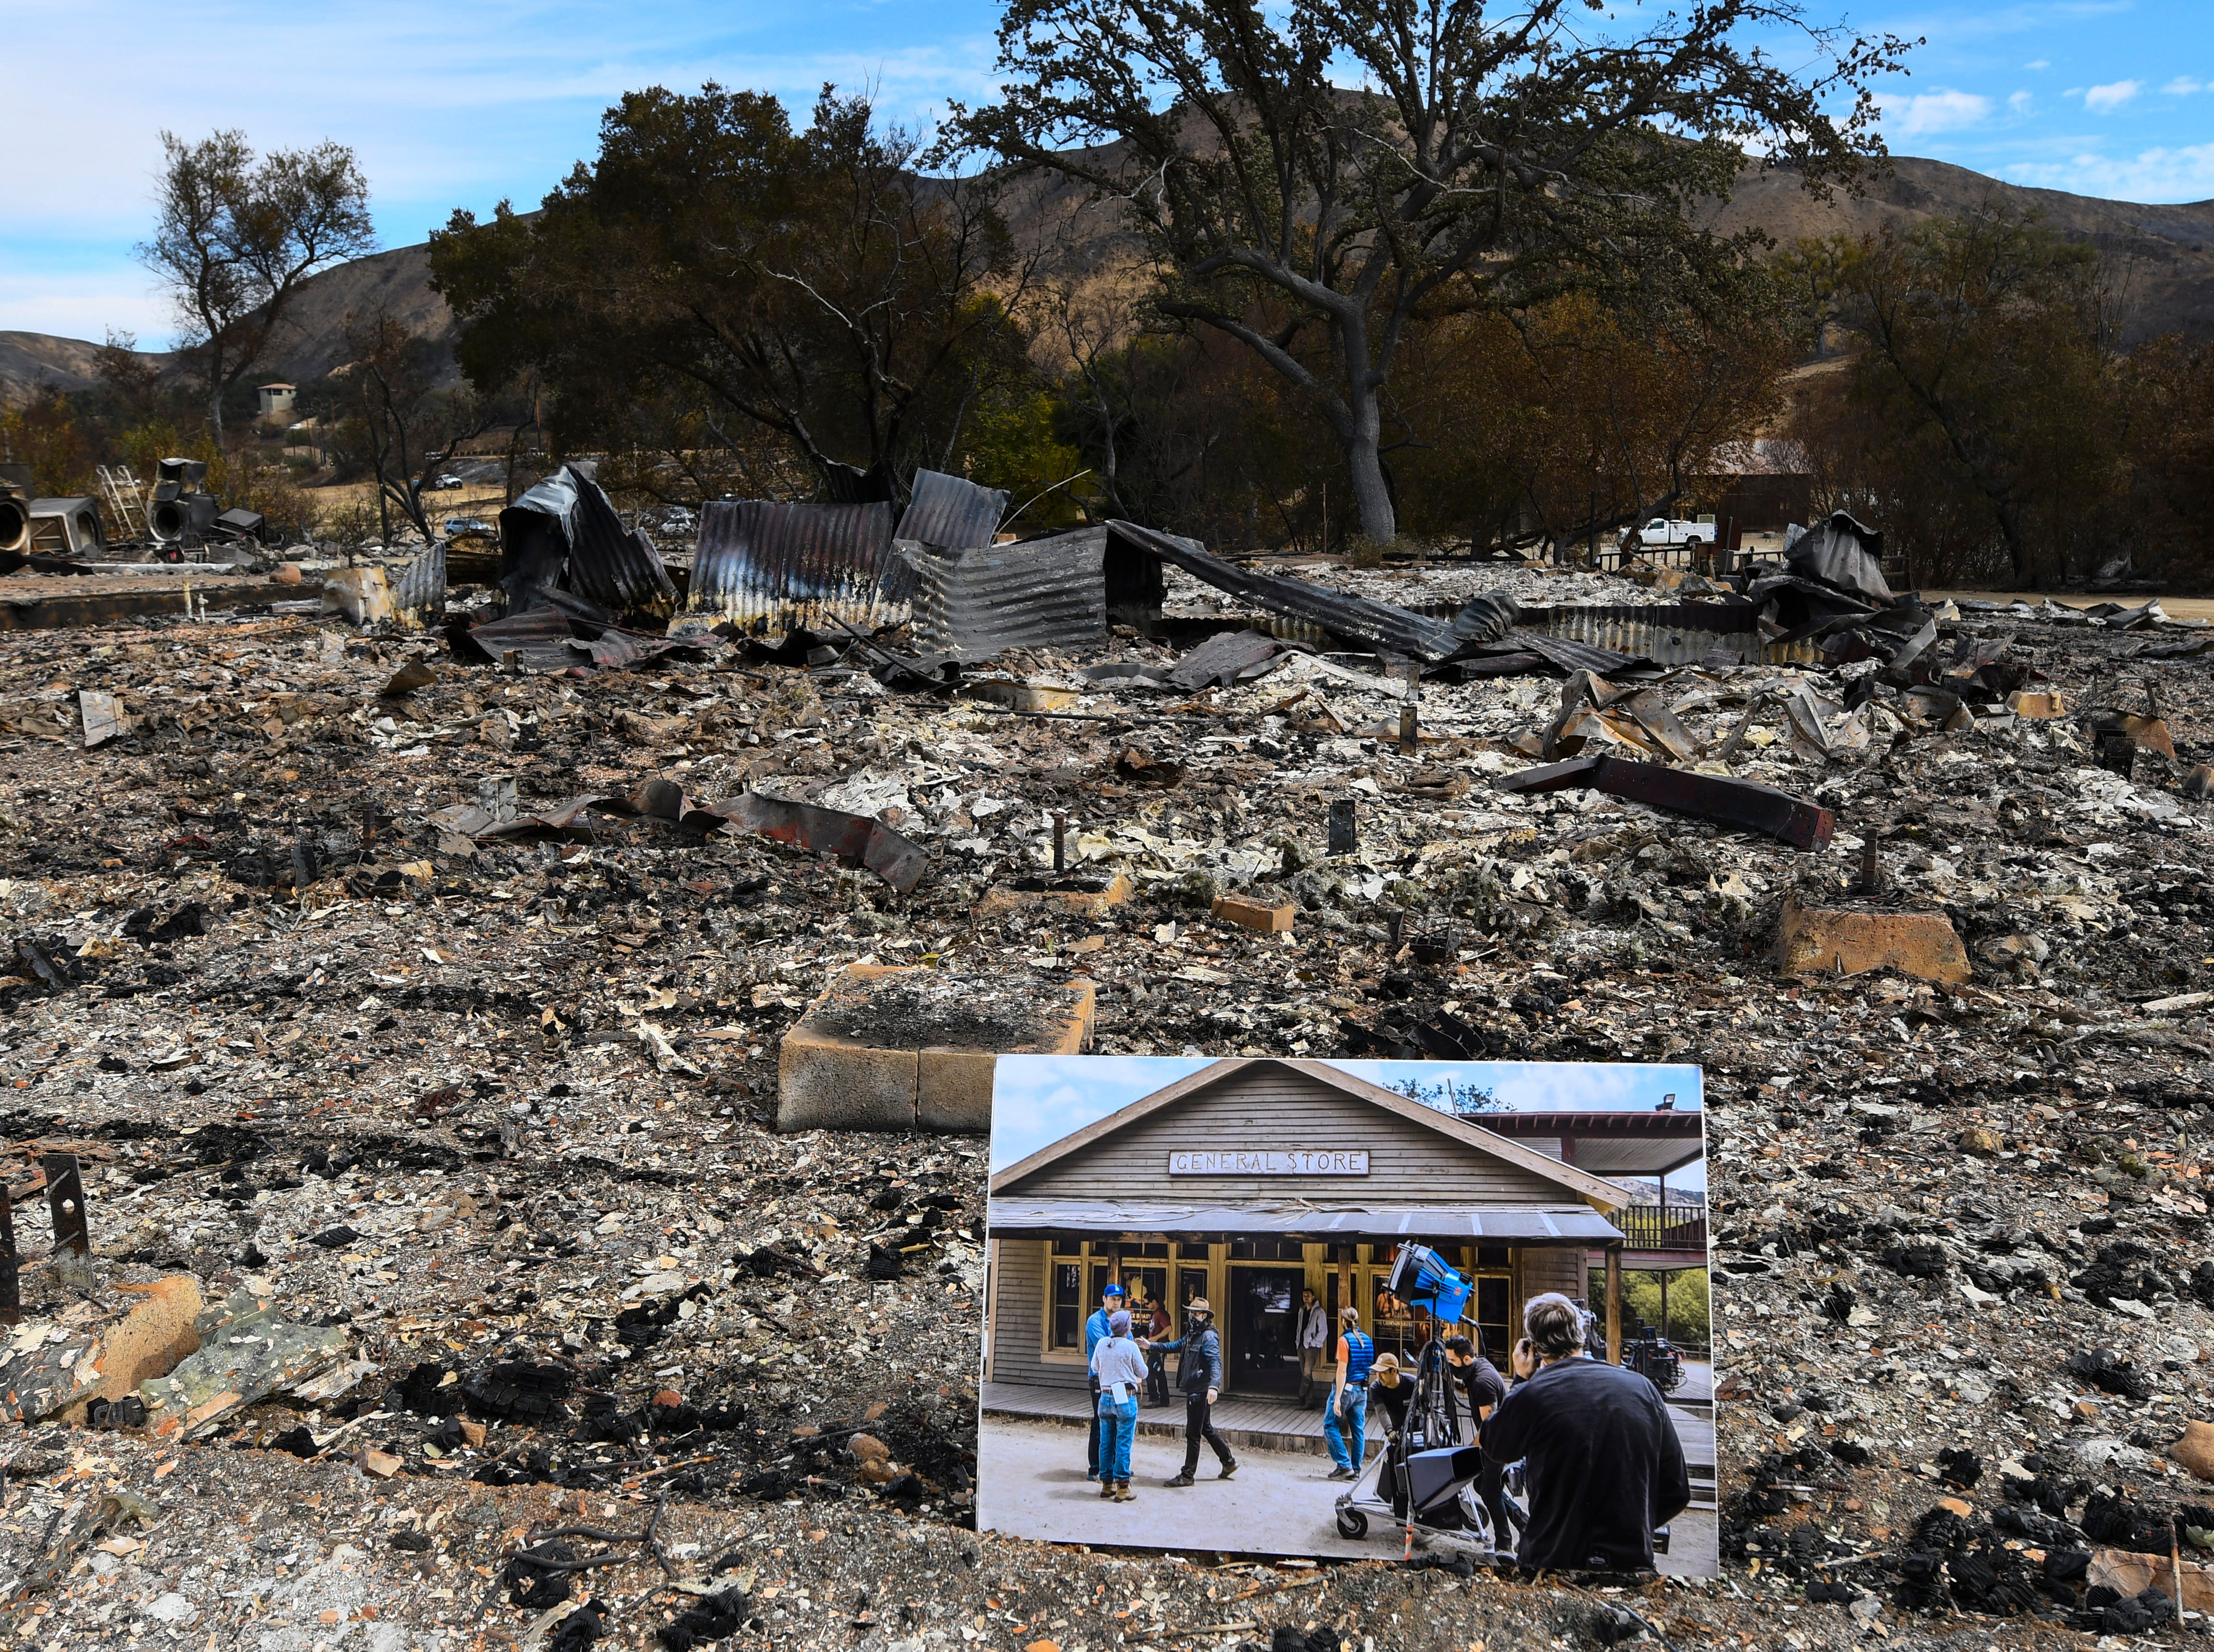 A photograph marks the spot at Paramount Ranch in  Agoura Hills, Calif. on Nov. 16, 2018 where the general store set once stood. The Paramount Ranch, a frontier western town built as a movie set that appeared in countless movies and TV shows was decimated by the Woolsey fire.